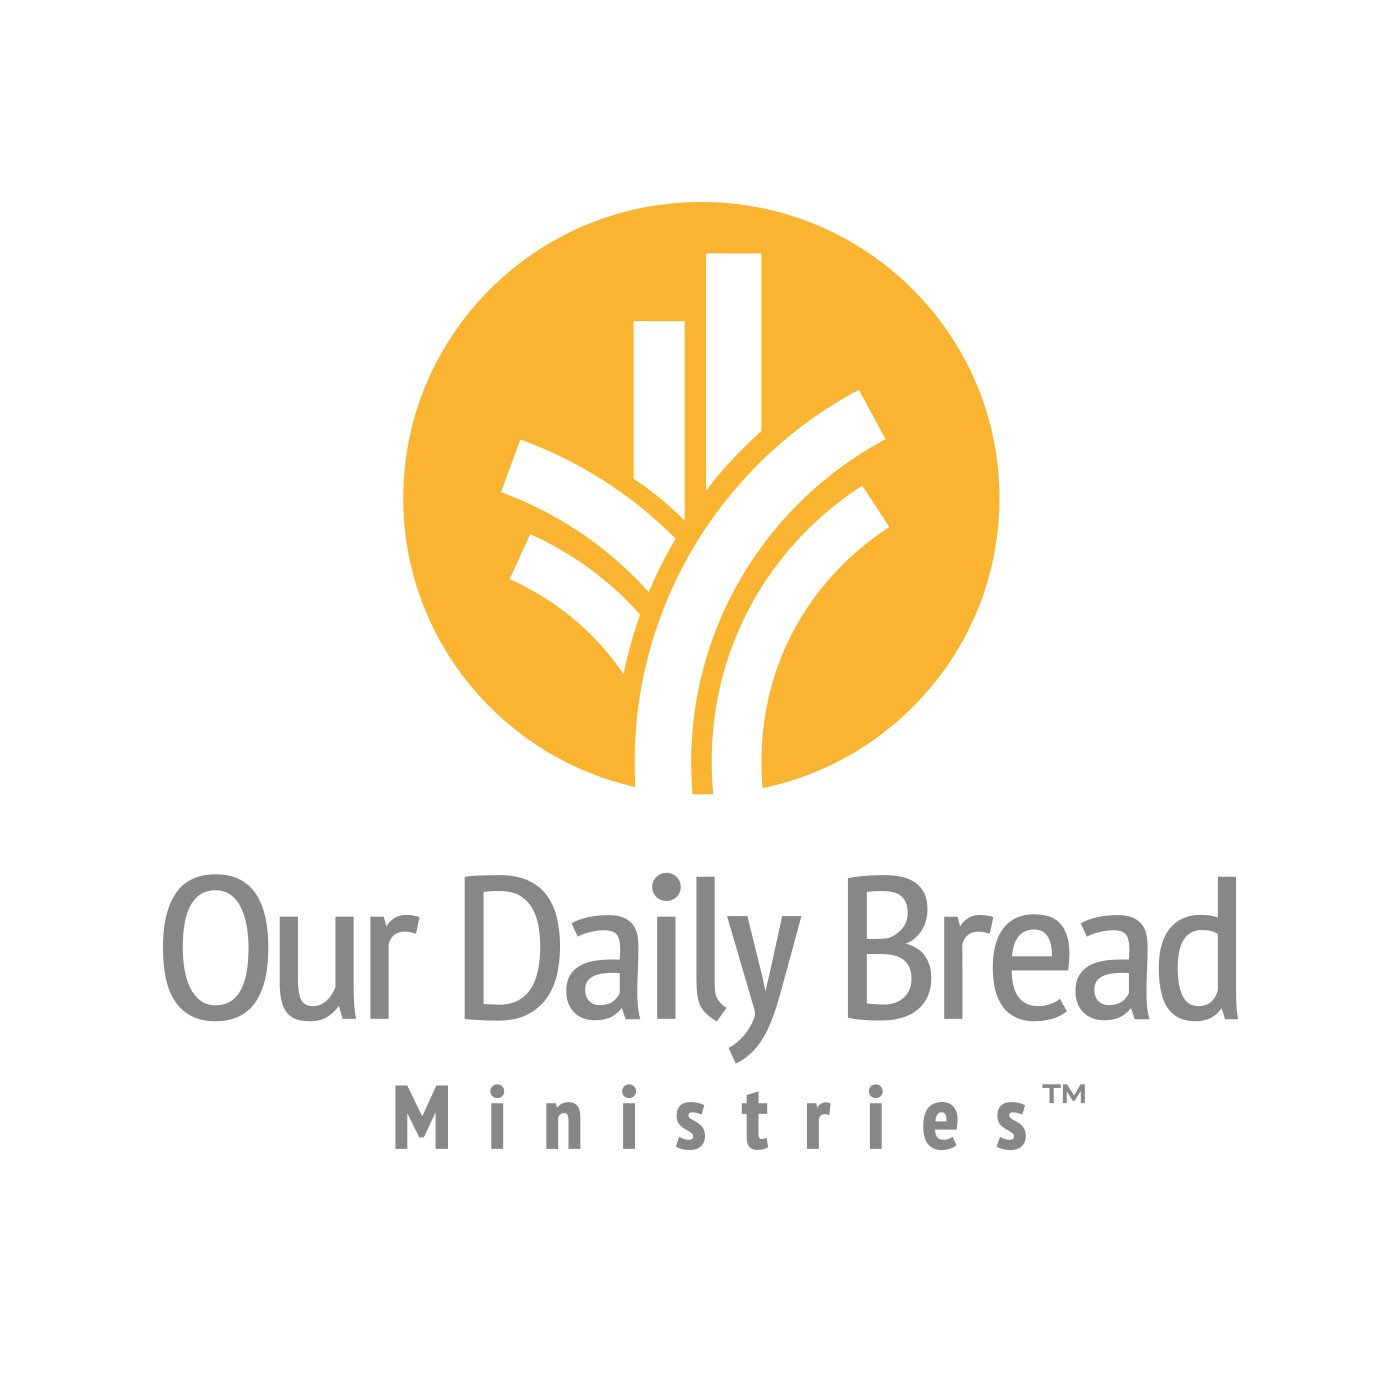 Our Daily Bread 31st December 2020, Our Daily Bread 31st December 2020 Devotional – Fireworks Of Life, Latest Nigeria News, Daily Devotionals & Celebrity Gossips - Chidispalace